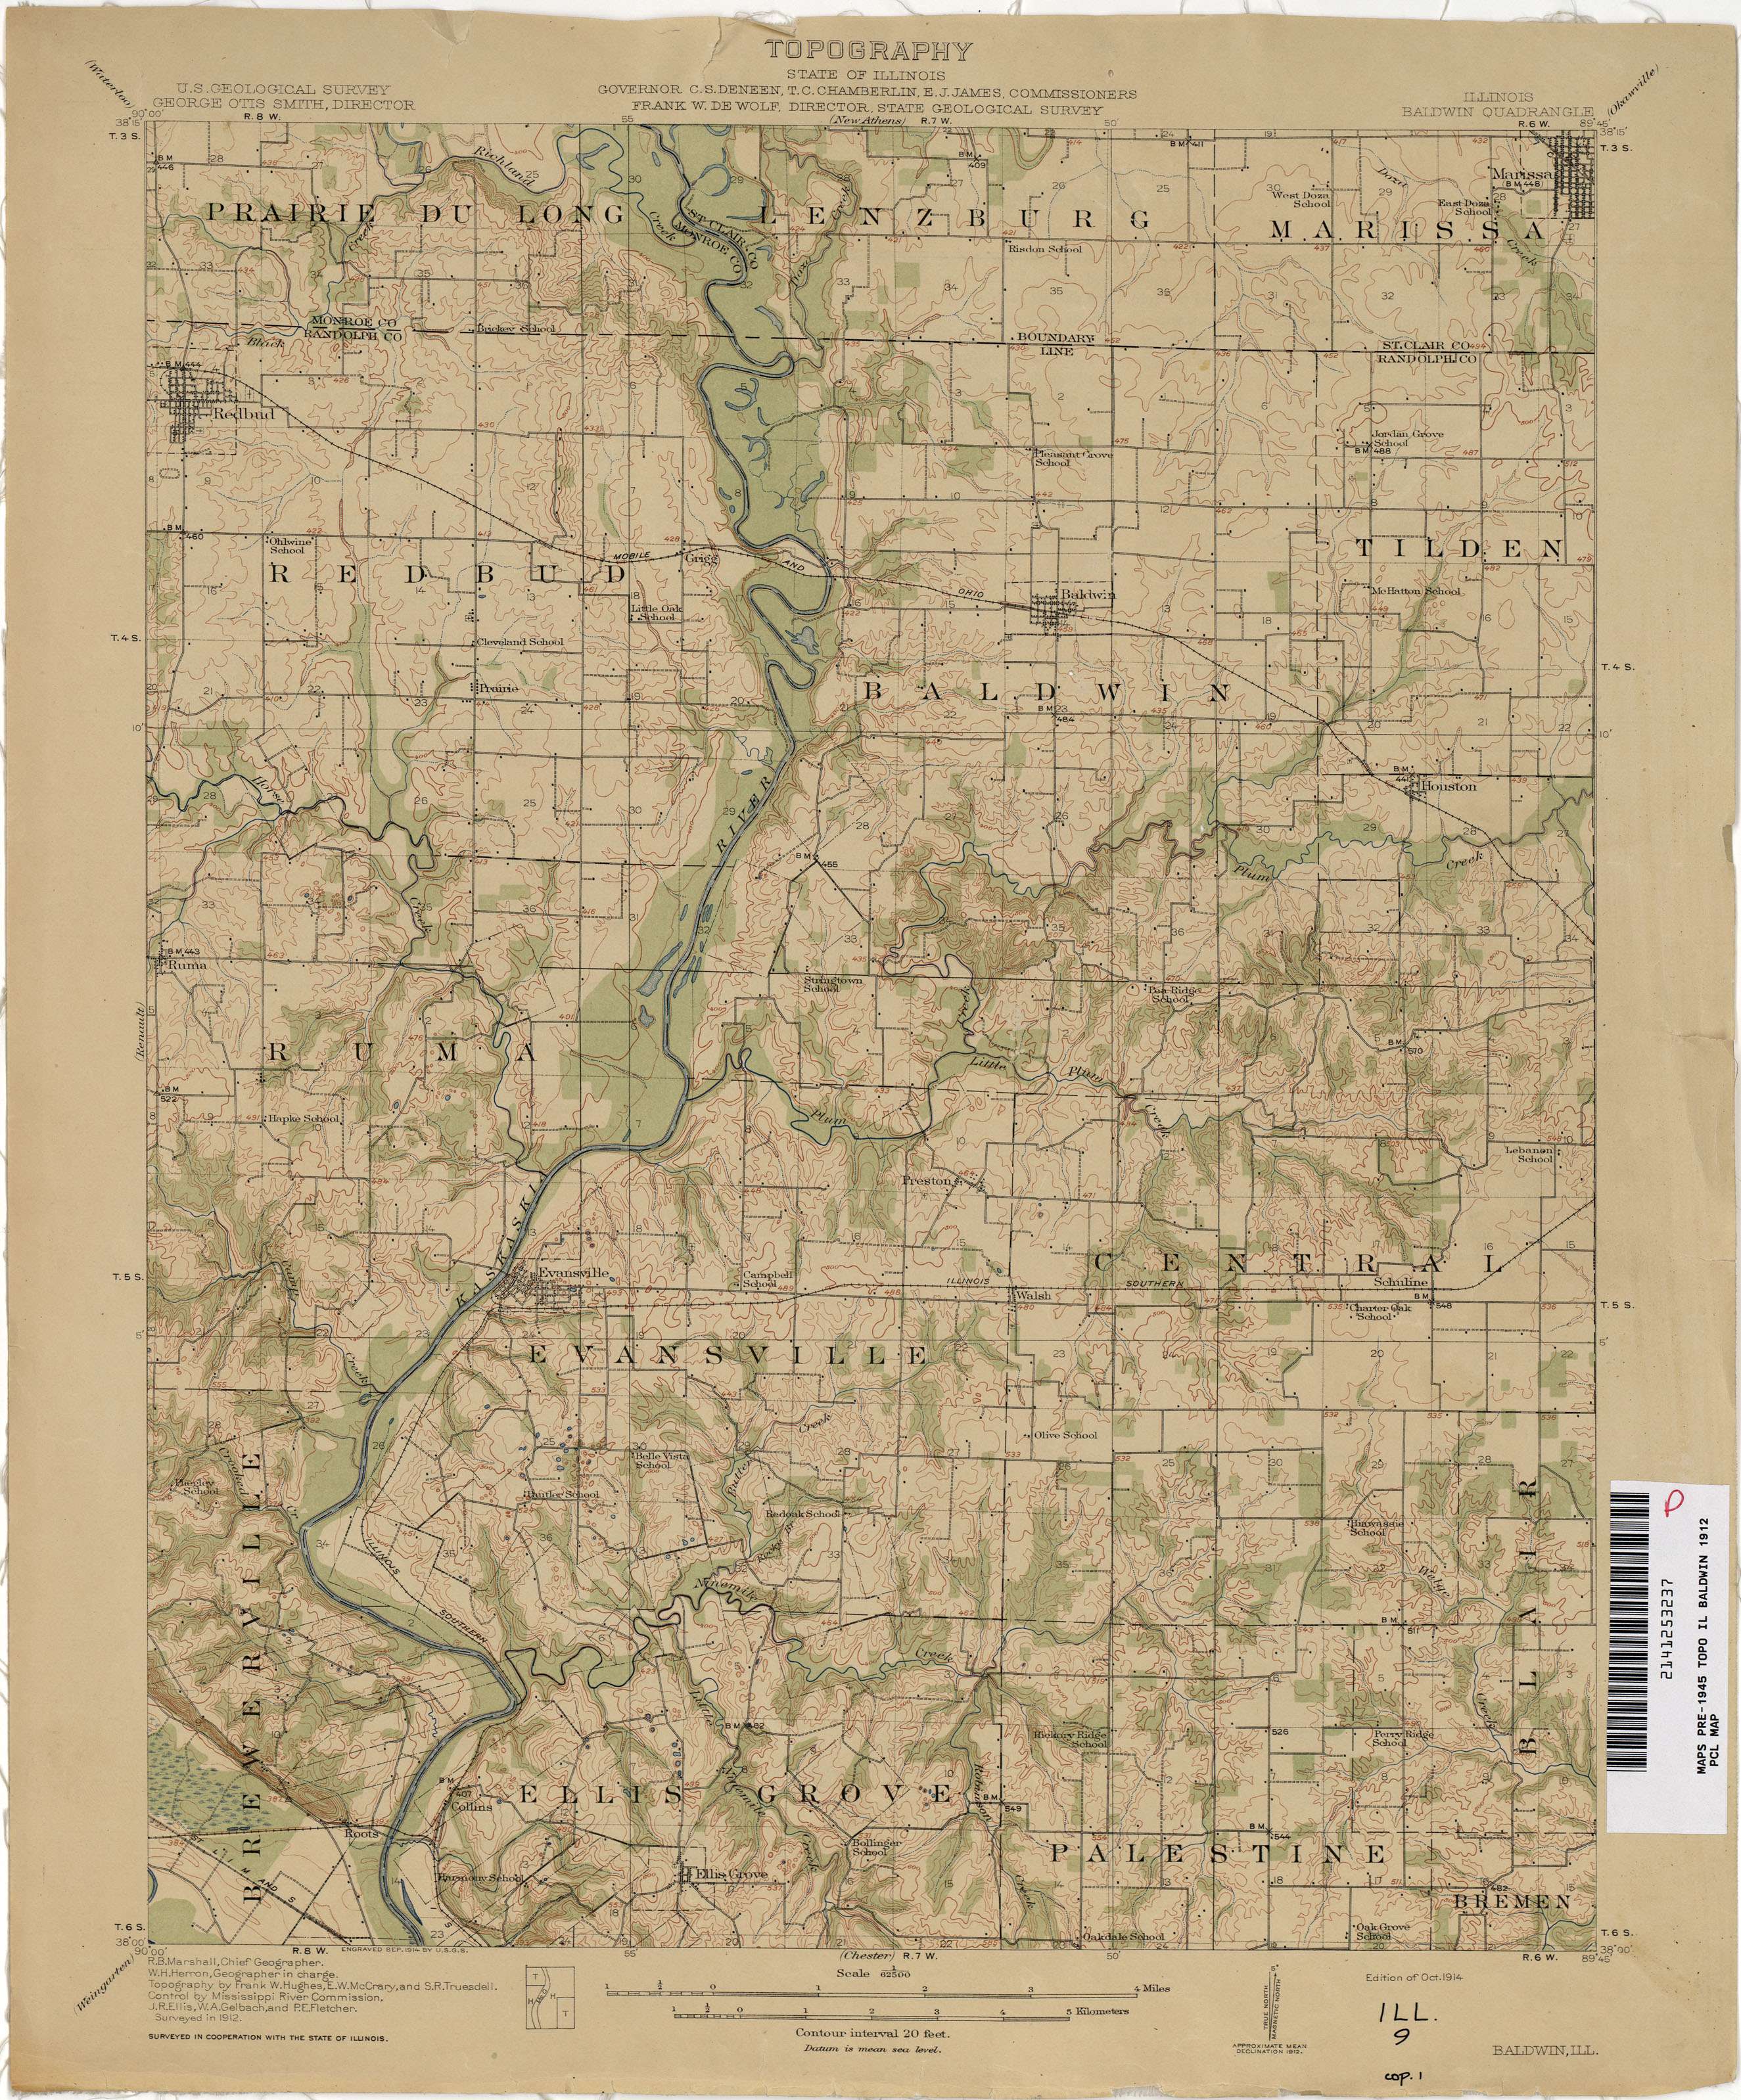 Illinois Historical Topographic Maps - Perry-Castañeda Map ... on